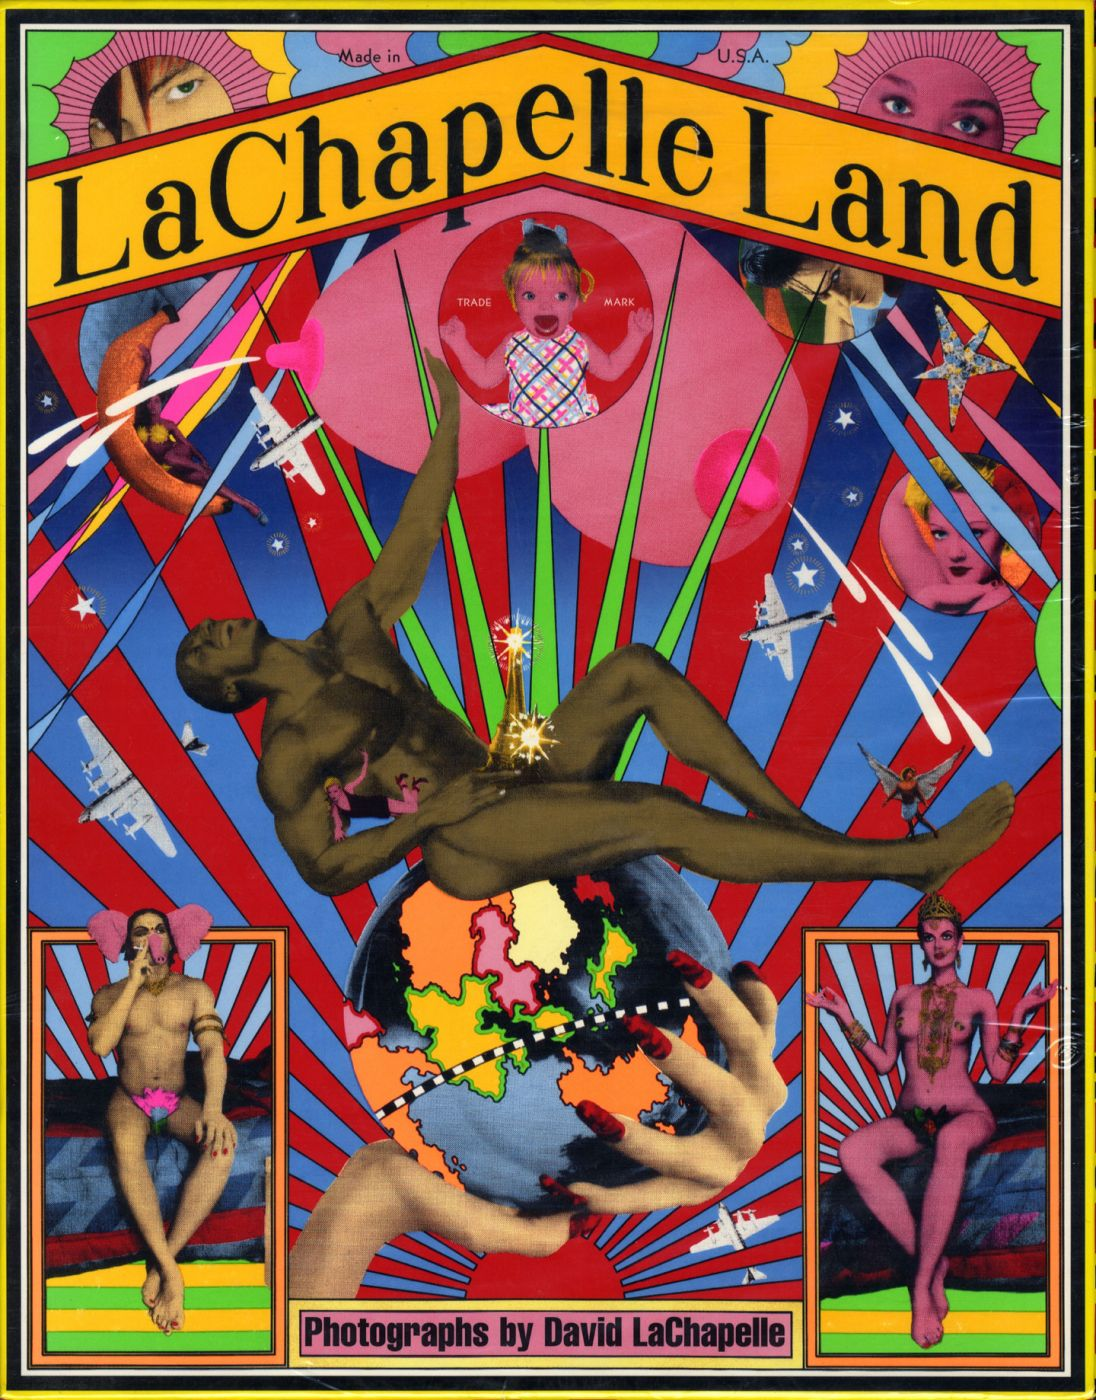 LaChapelle Land: Photographs by David LaChapelle (First Edition)